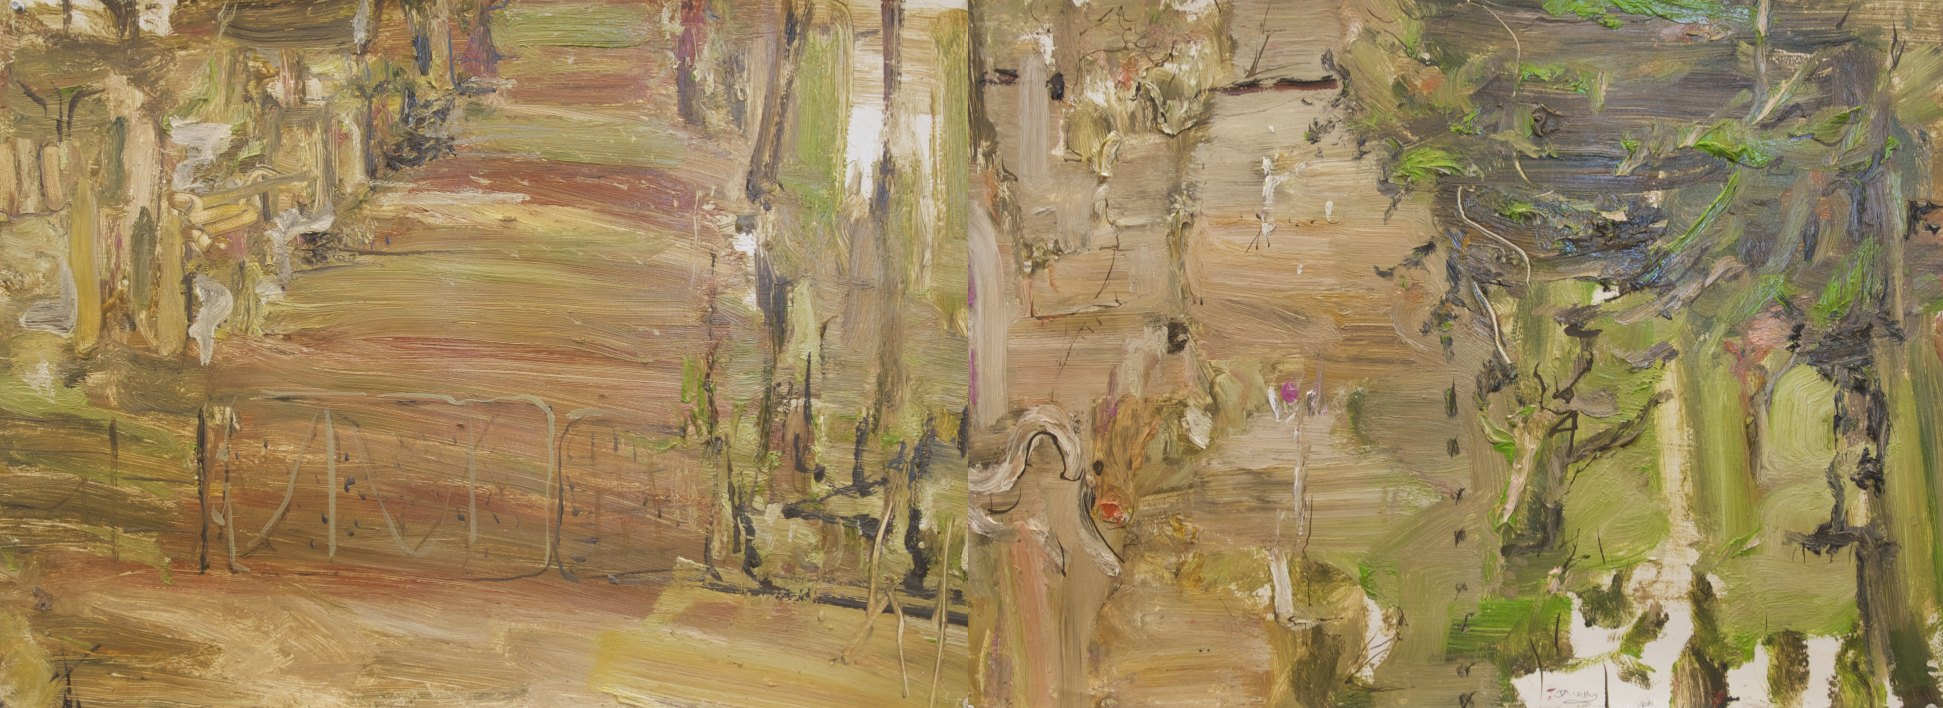 'Tantulean Gate' 2008  archival oil on paper  55 x 150 cm